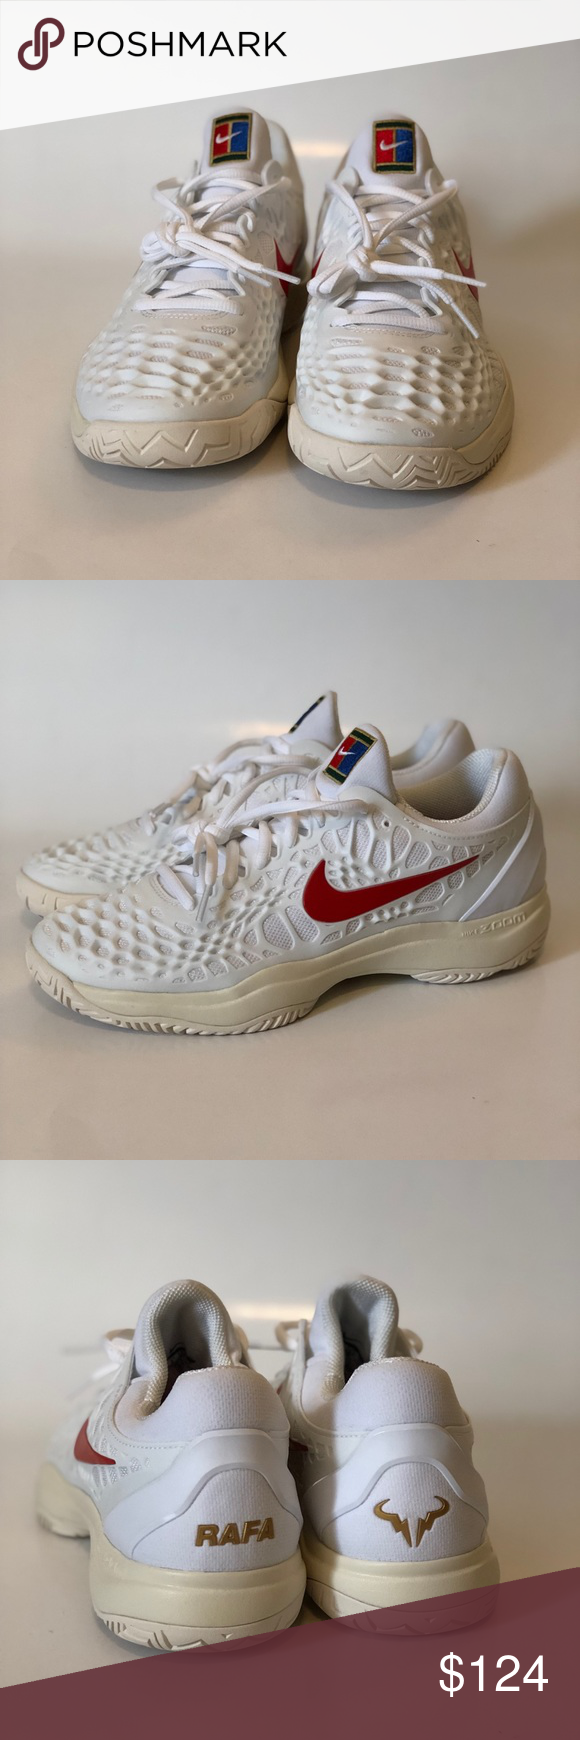 amistad No haga Indirecto  Nike Air Zoom Cage 3 HC Rafa Nadal Sz 9 Nike Air Zoom Cage 3 HC Rafa Nadal  Tennis Shoes White Red 918193-103 Sz 9. Shipped with USP… | Nike air zoom,  Nike air, Nike